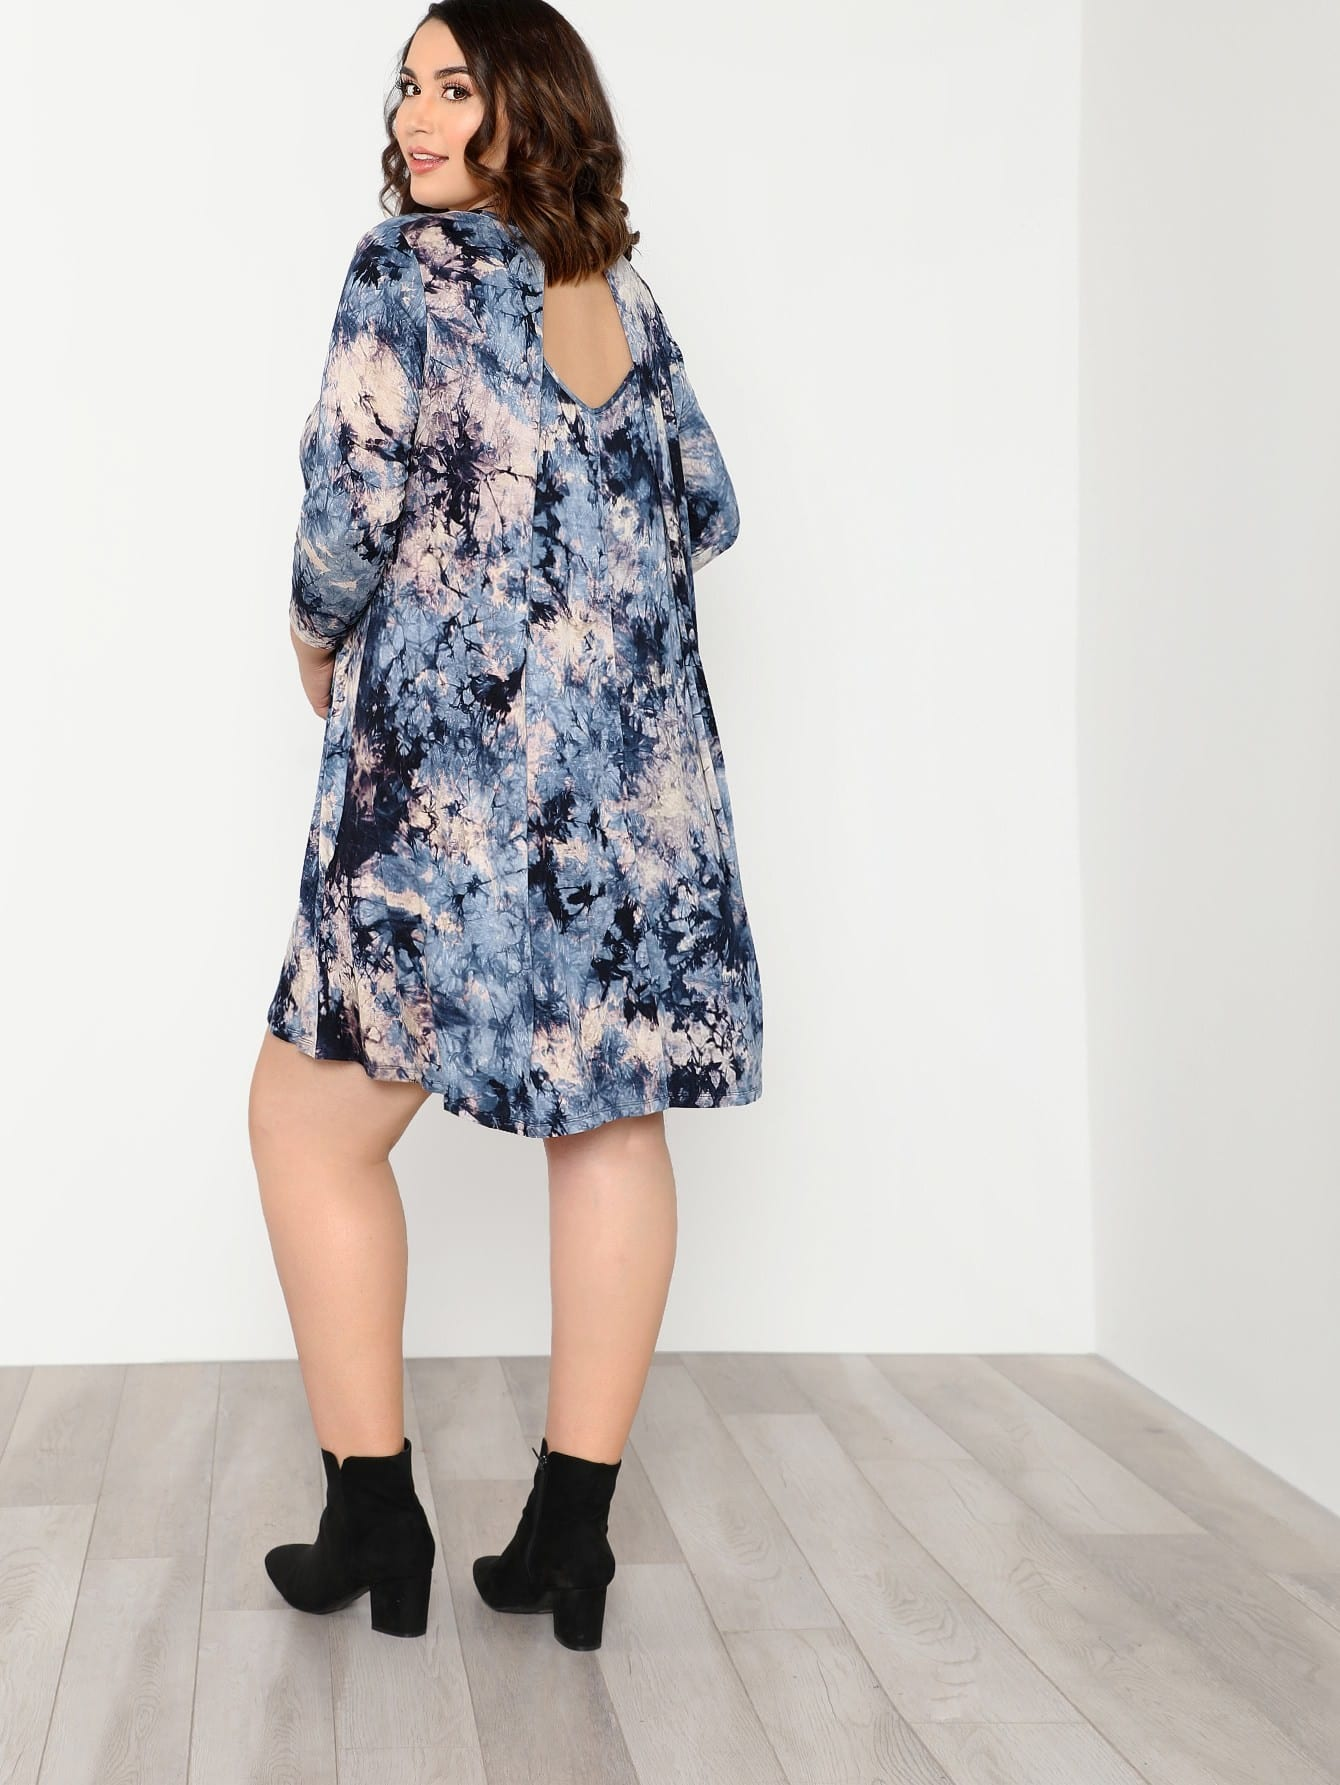 Plus Tie Dye Swing Dress чехол для складного ножа p fk